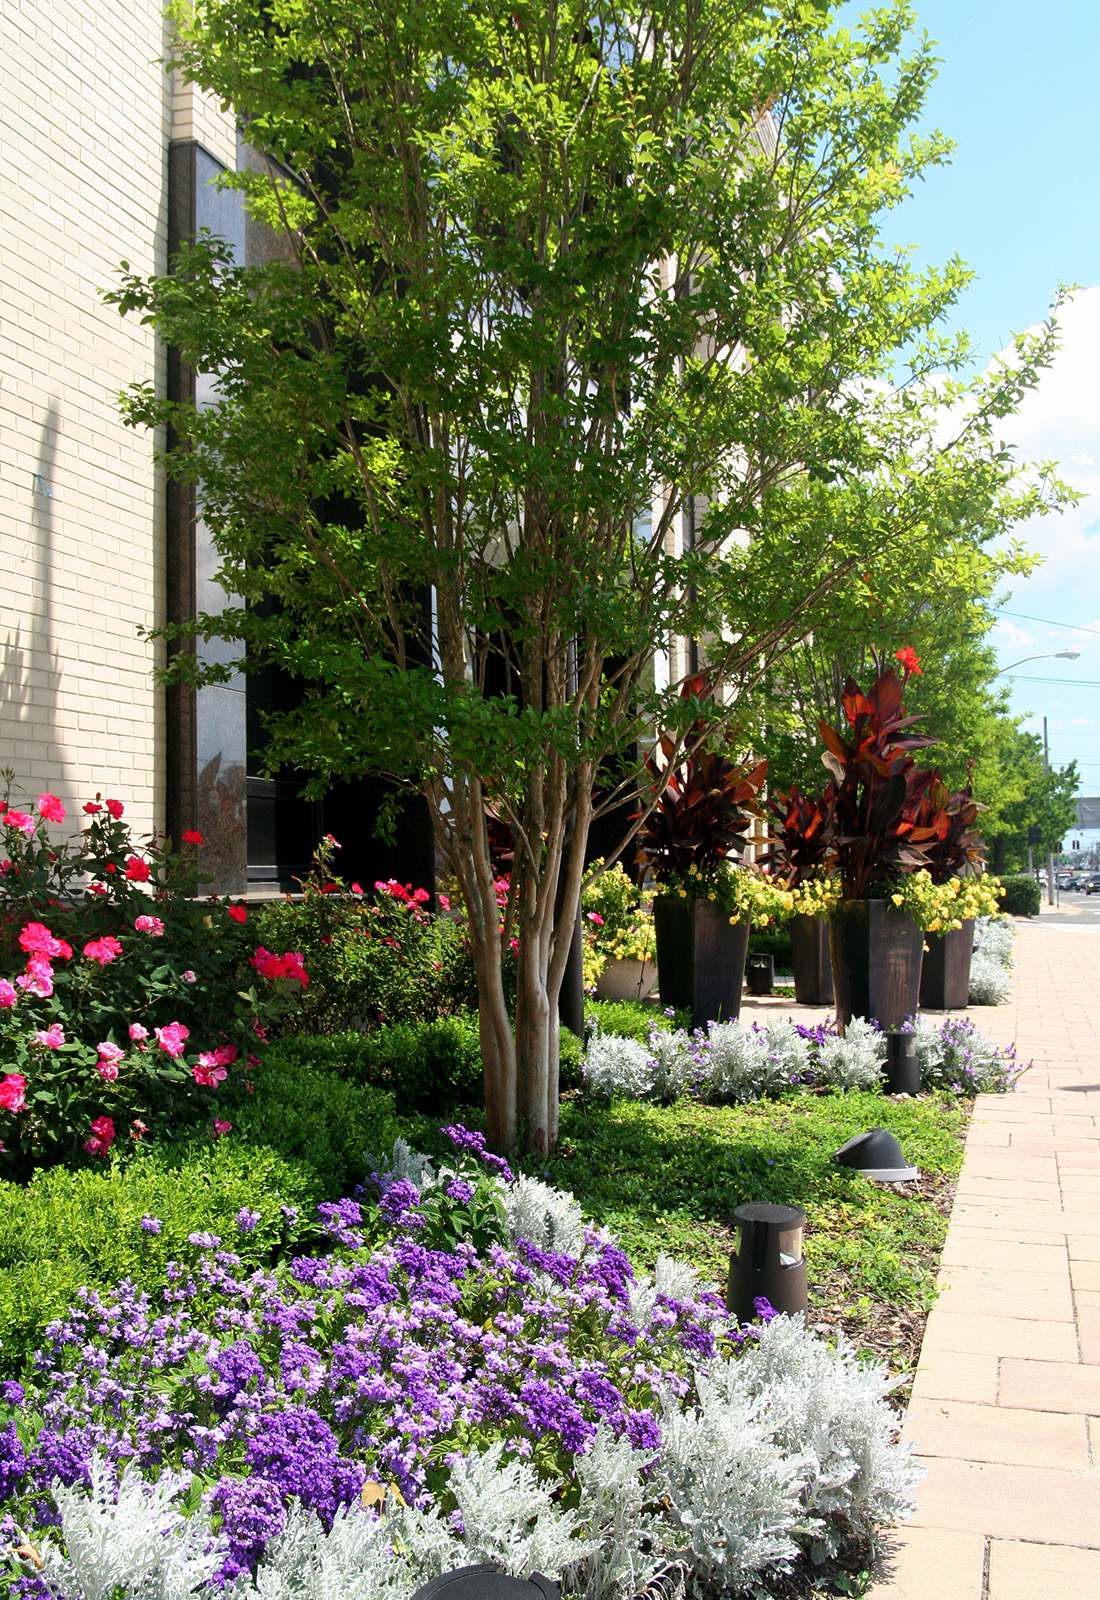 Summer planting in a commercial location.